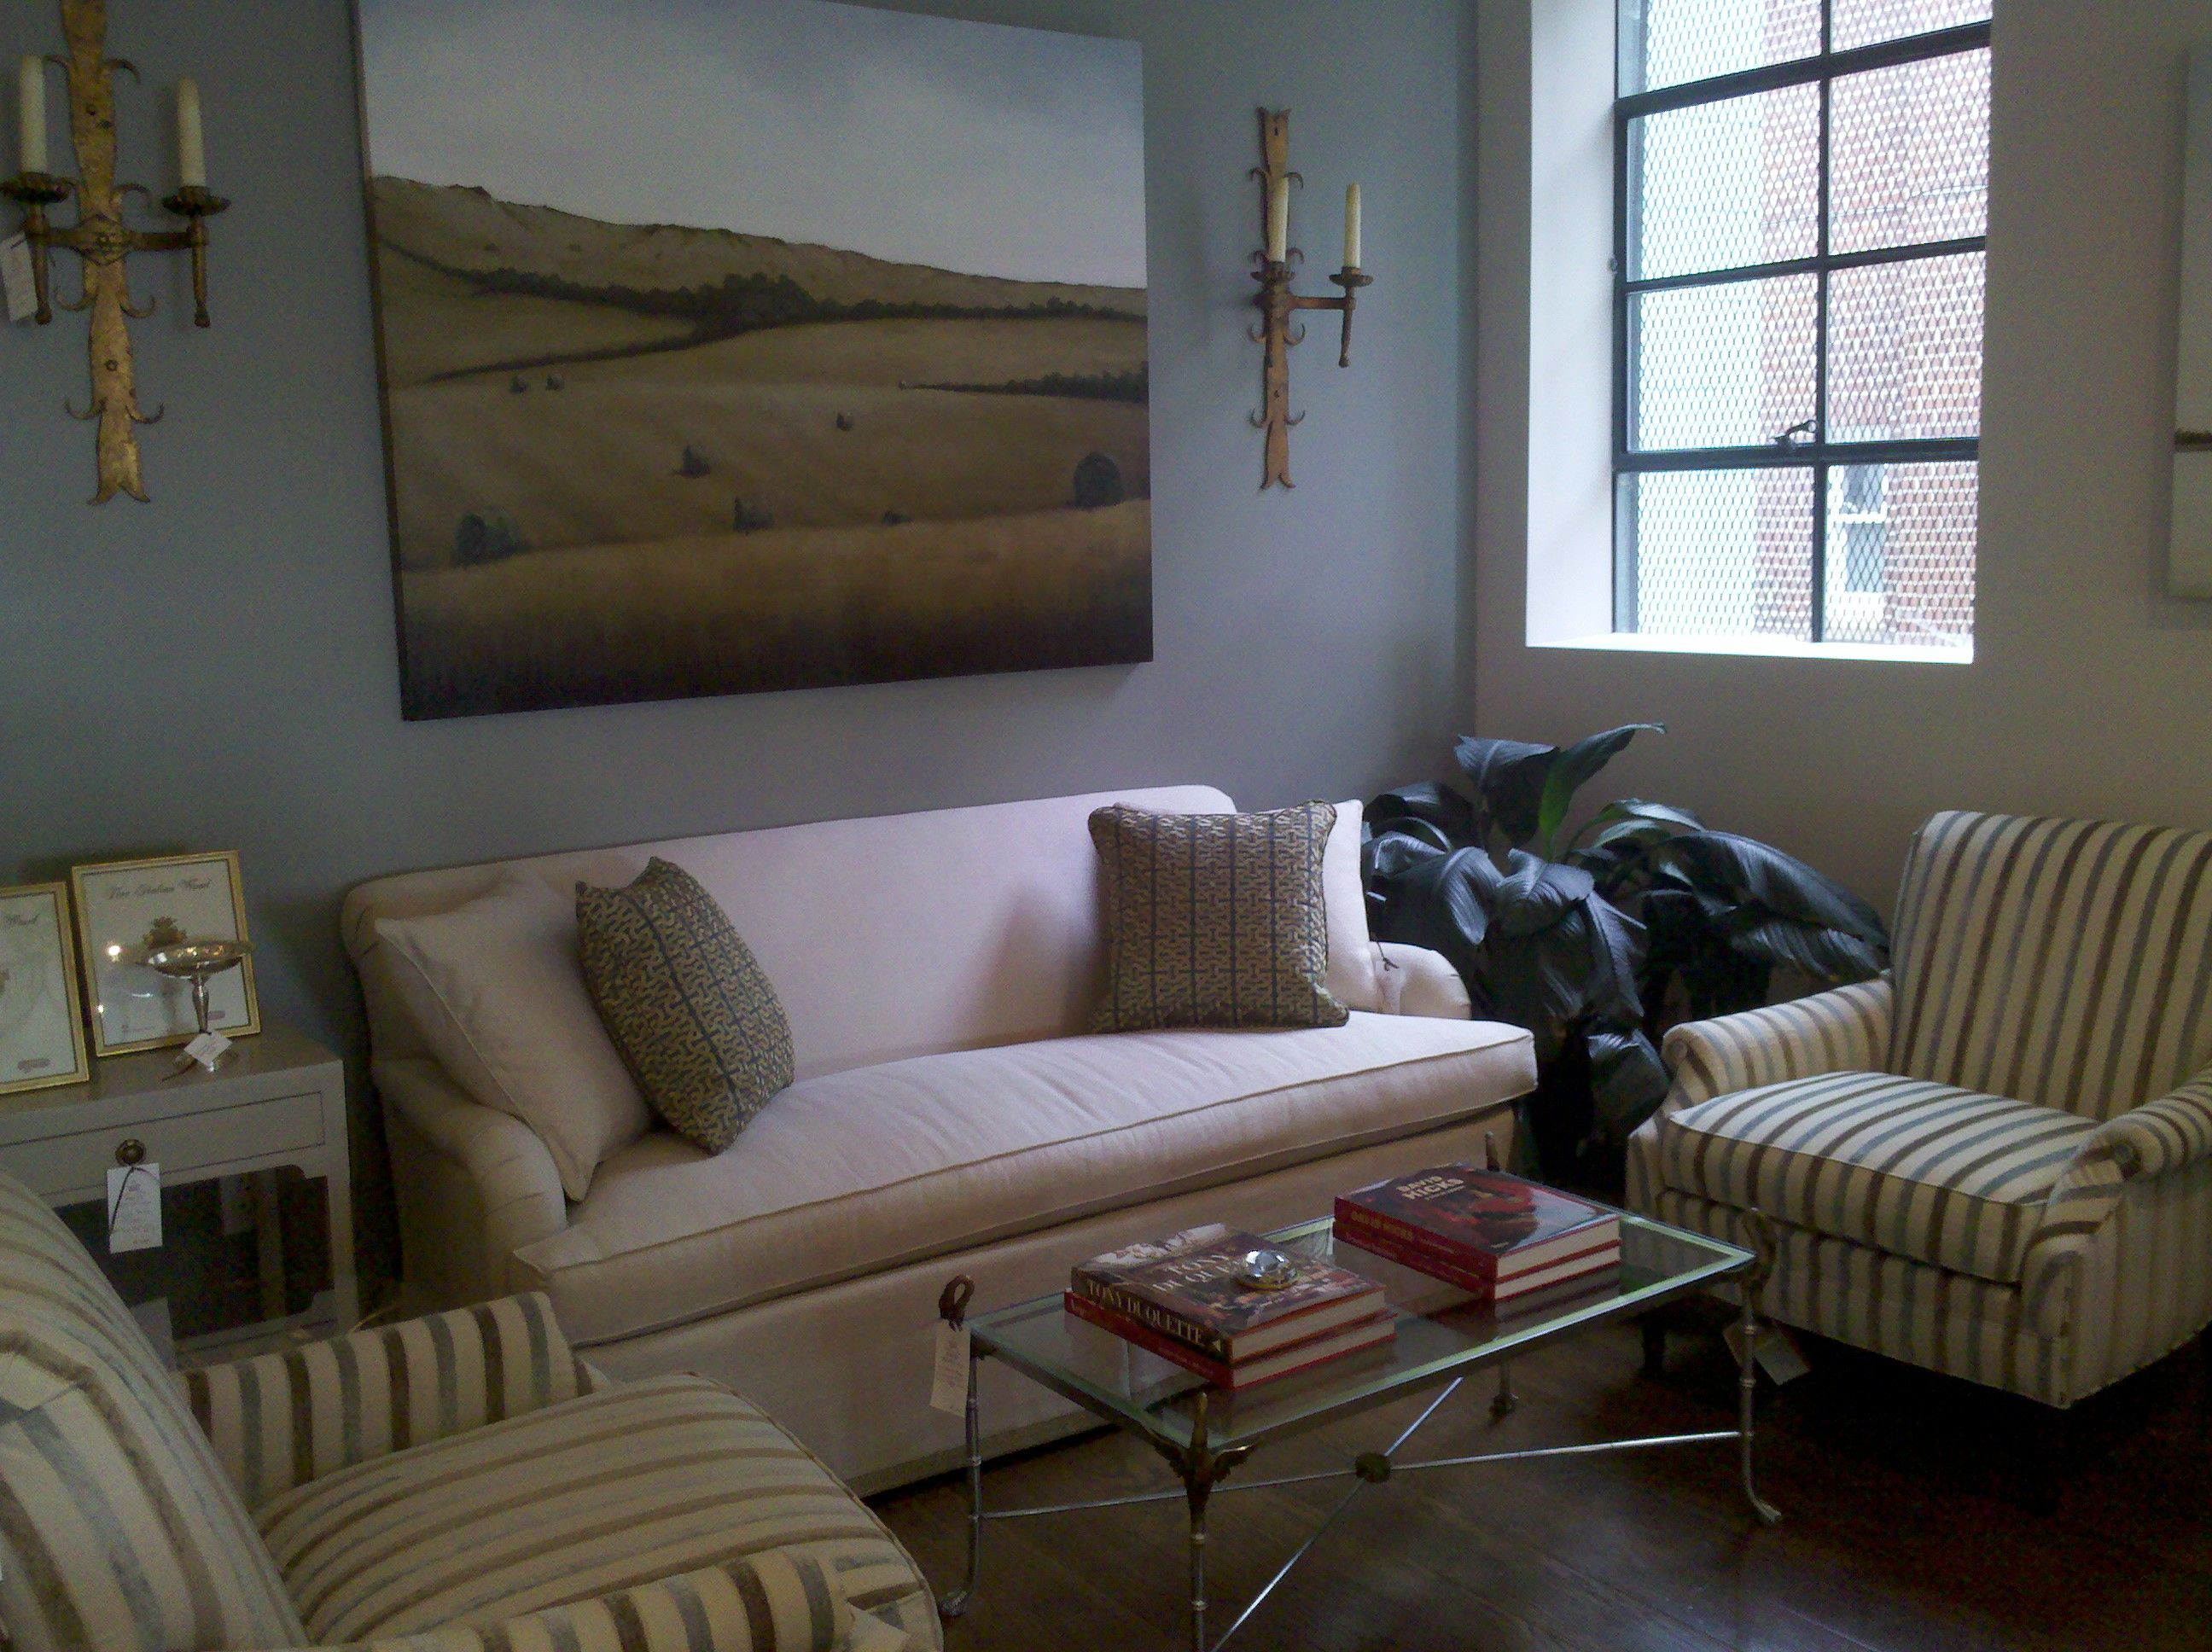 Hickory Chair sofa and chairs with midcentury swan coffee